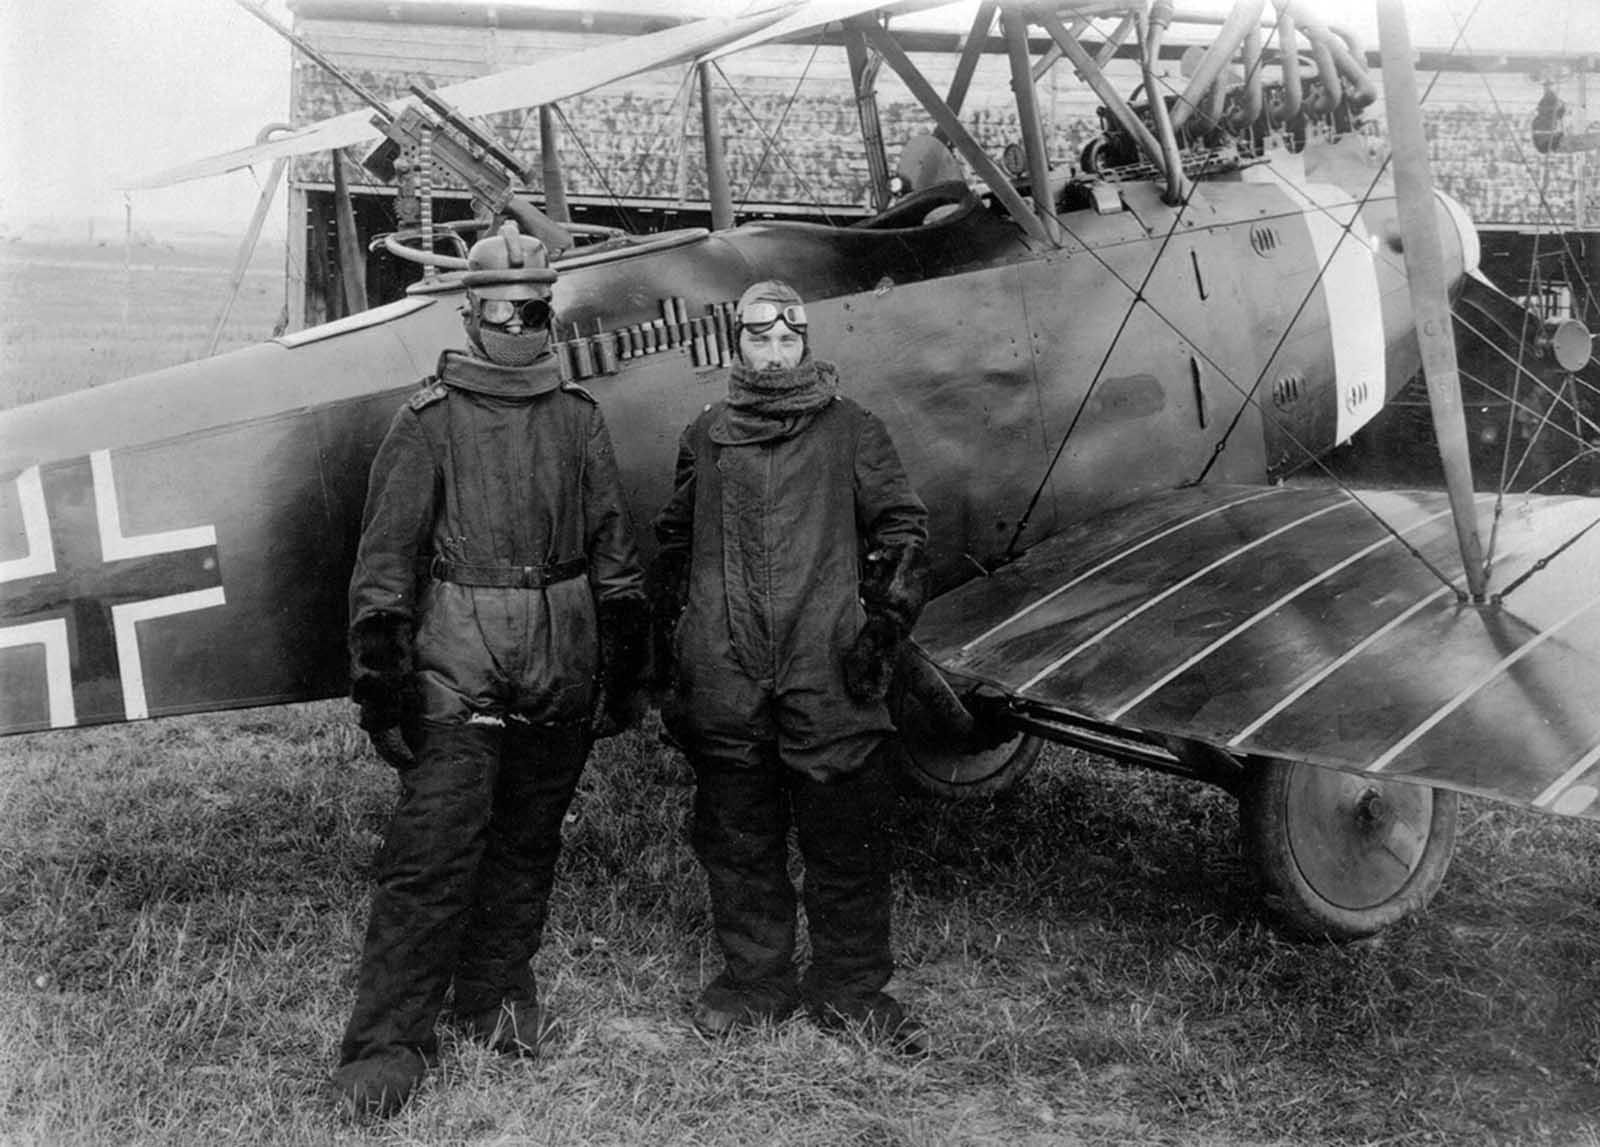 German pilot Richard Scholl and his co-pilot Lieutenant Anderer, in flight gear beside their Hannover CL.II biplane in 1918.